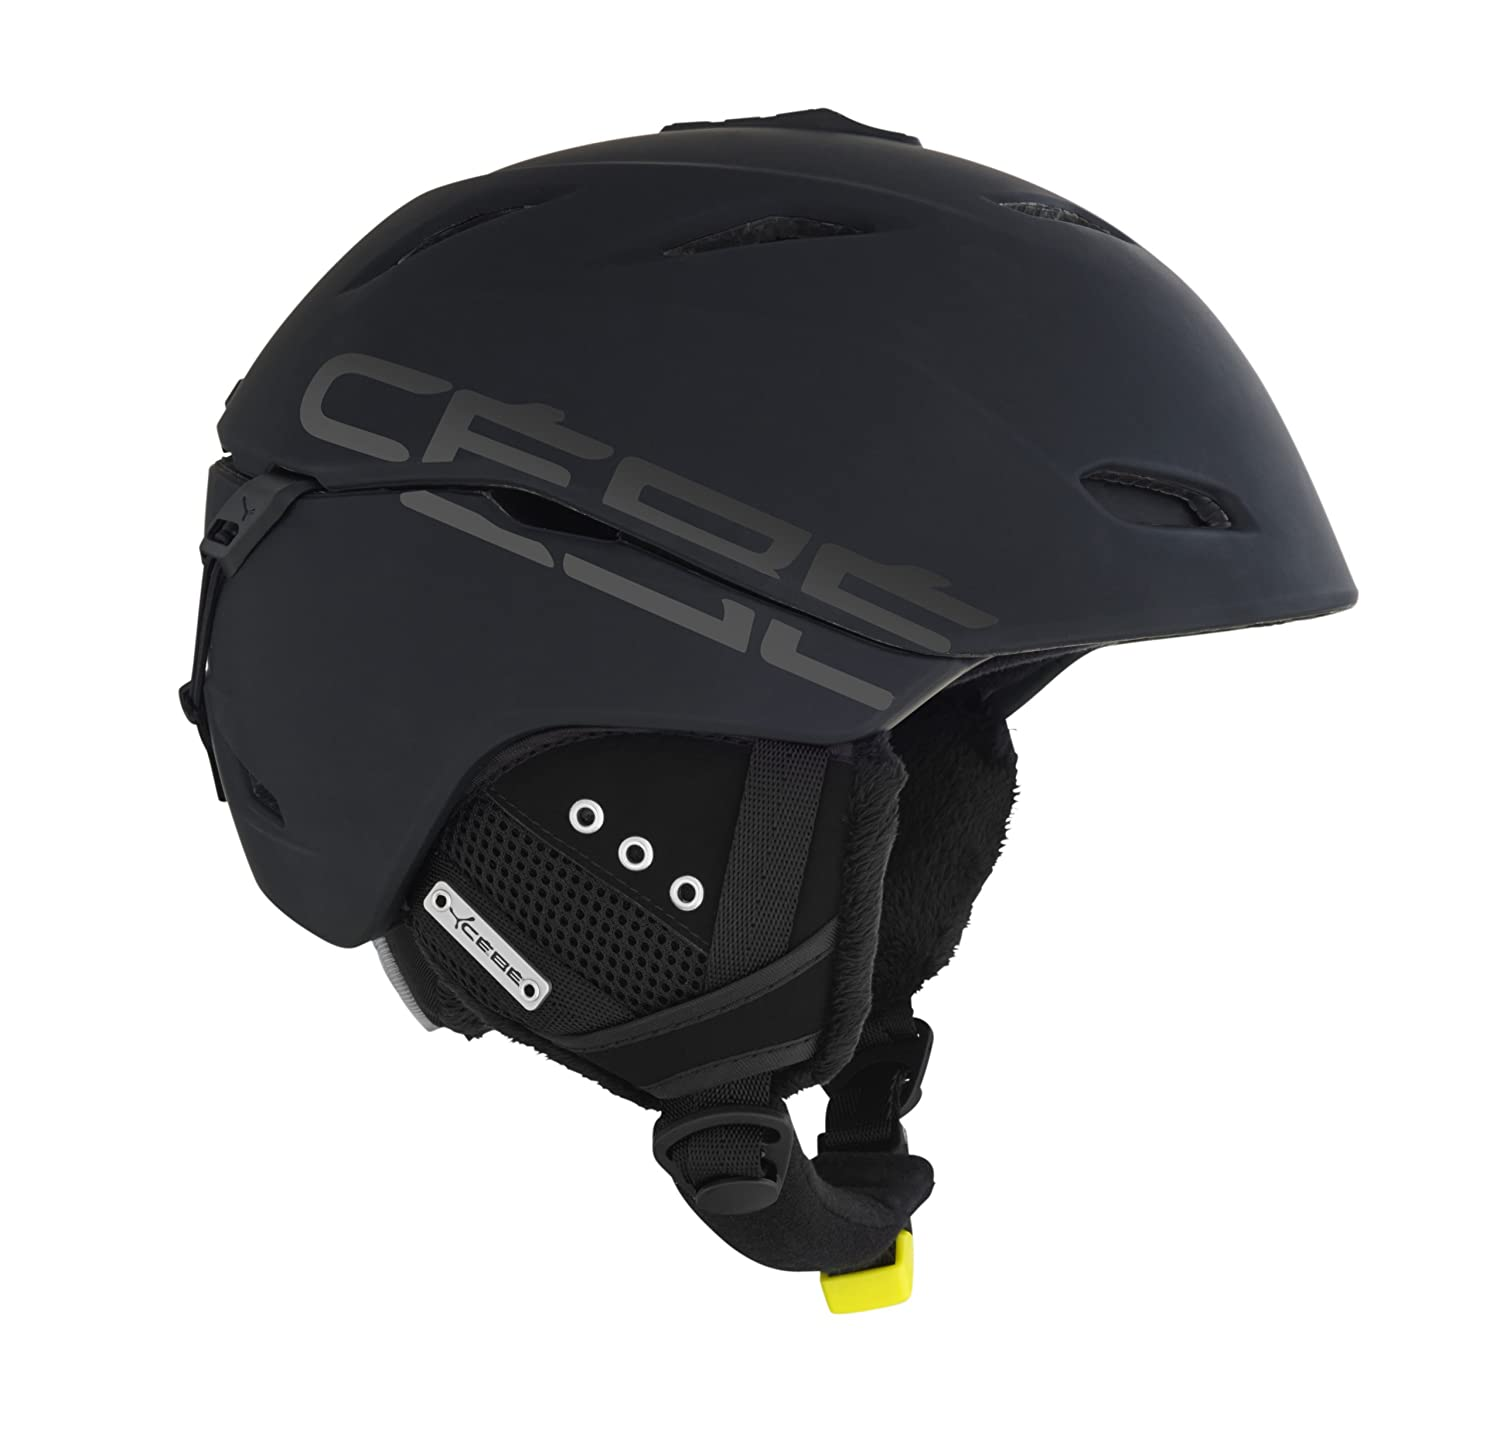 Amazon.com : Cebe CBH3 Atmosphere Deluxe Black Ski Helmet - 58-62cm : Sports & Outdoors